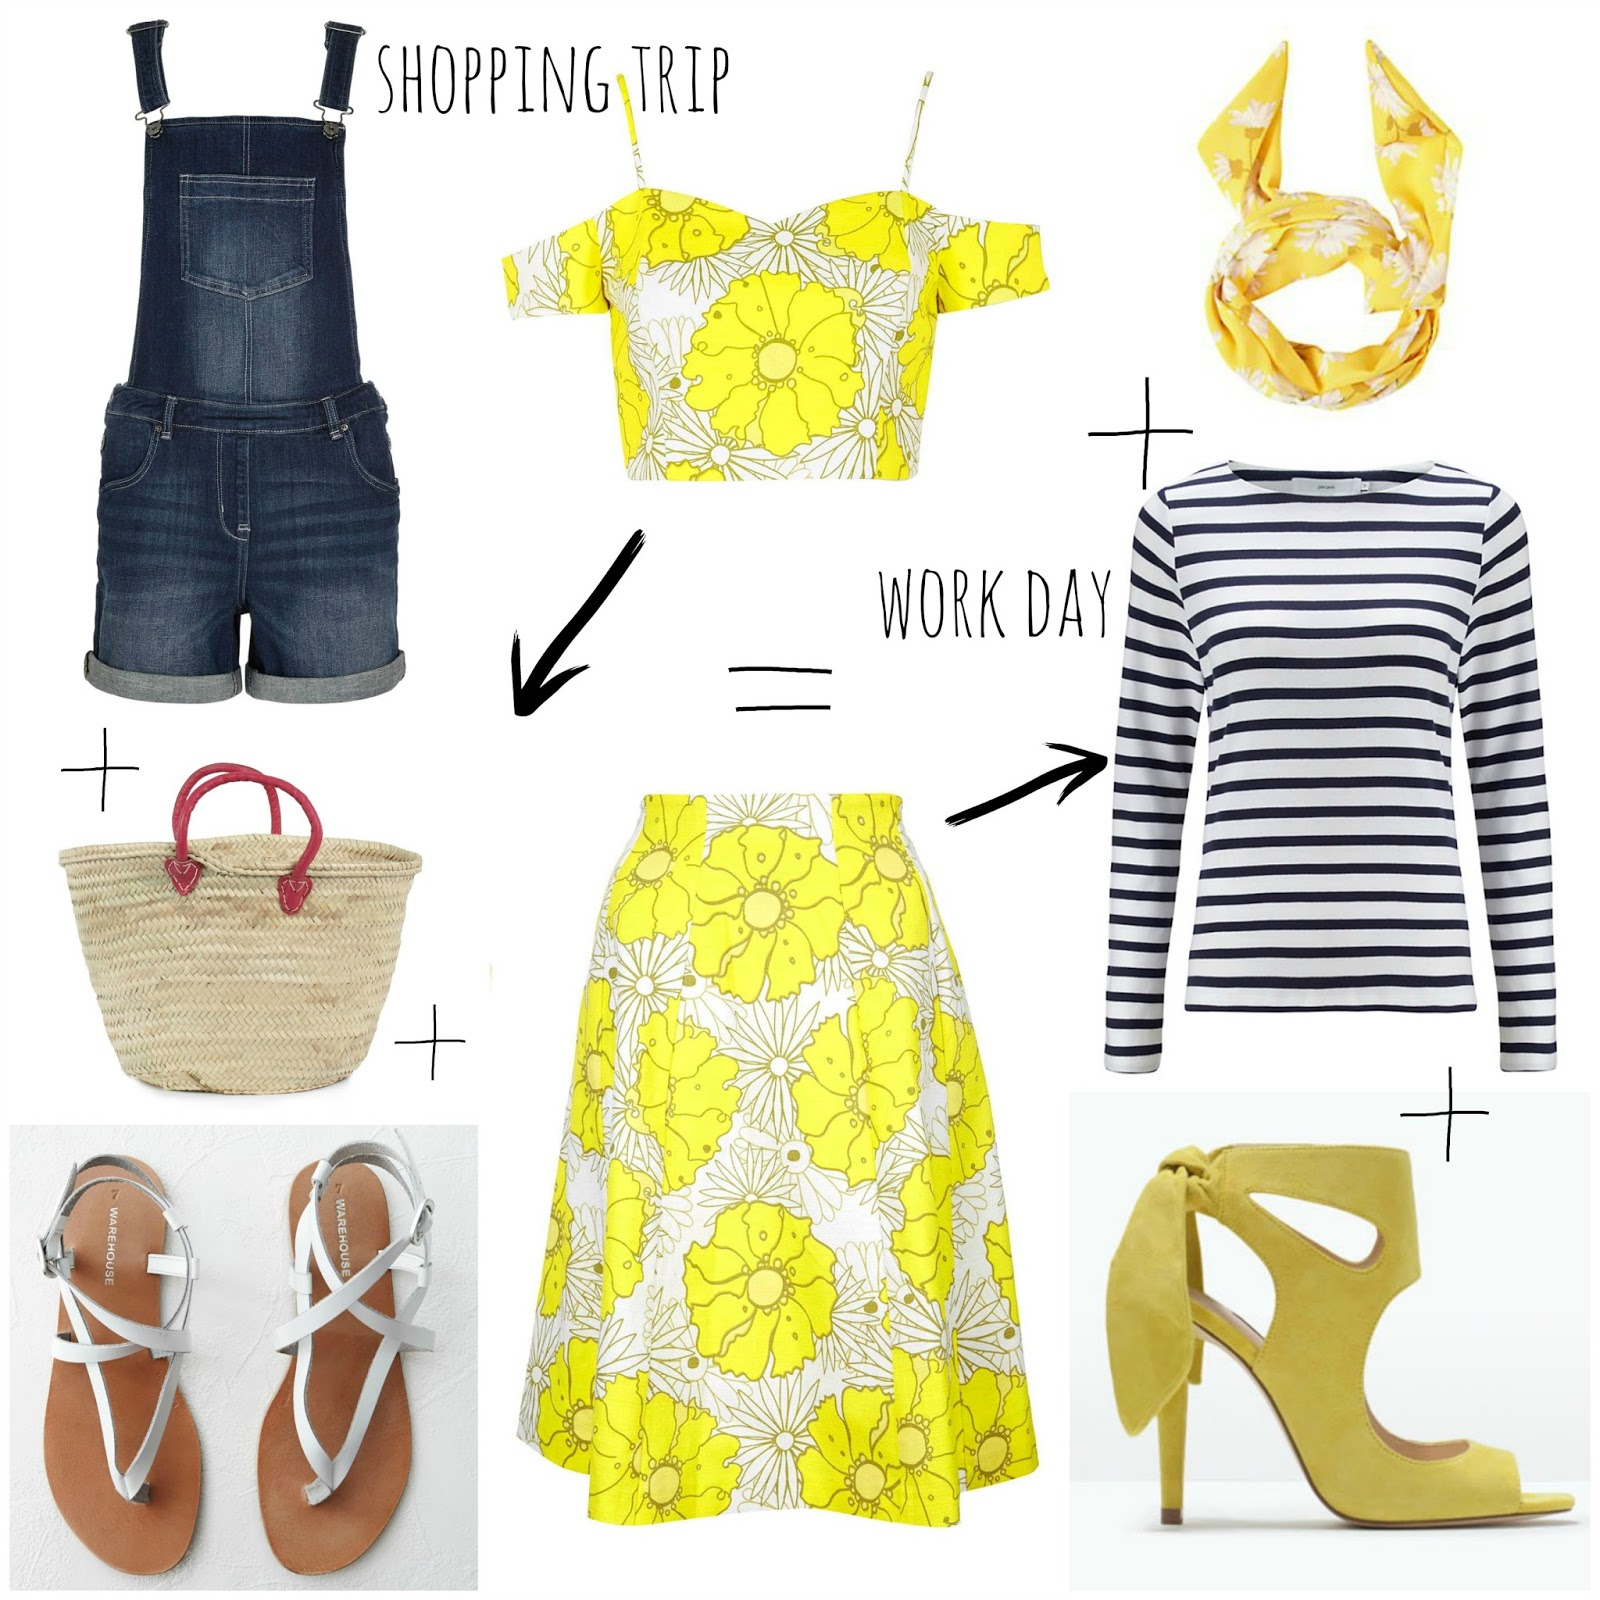 mamasVIb | V. I. BABYMAMAS: Have you tried a co-ord this summer? | asos | prim ark | culottes | womens fashion | tops shoot bardot top and skirt | floral print | breton | boden | dungarees | yellow heels | topshop | warehouse | co-eds | fashion | style | kate spade | shoes |heels | wardrobe wonders | stylish | mamasVIb | clothes  models | match match | matching style s suiting | co-ord | style